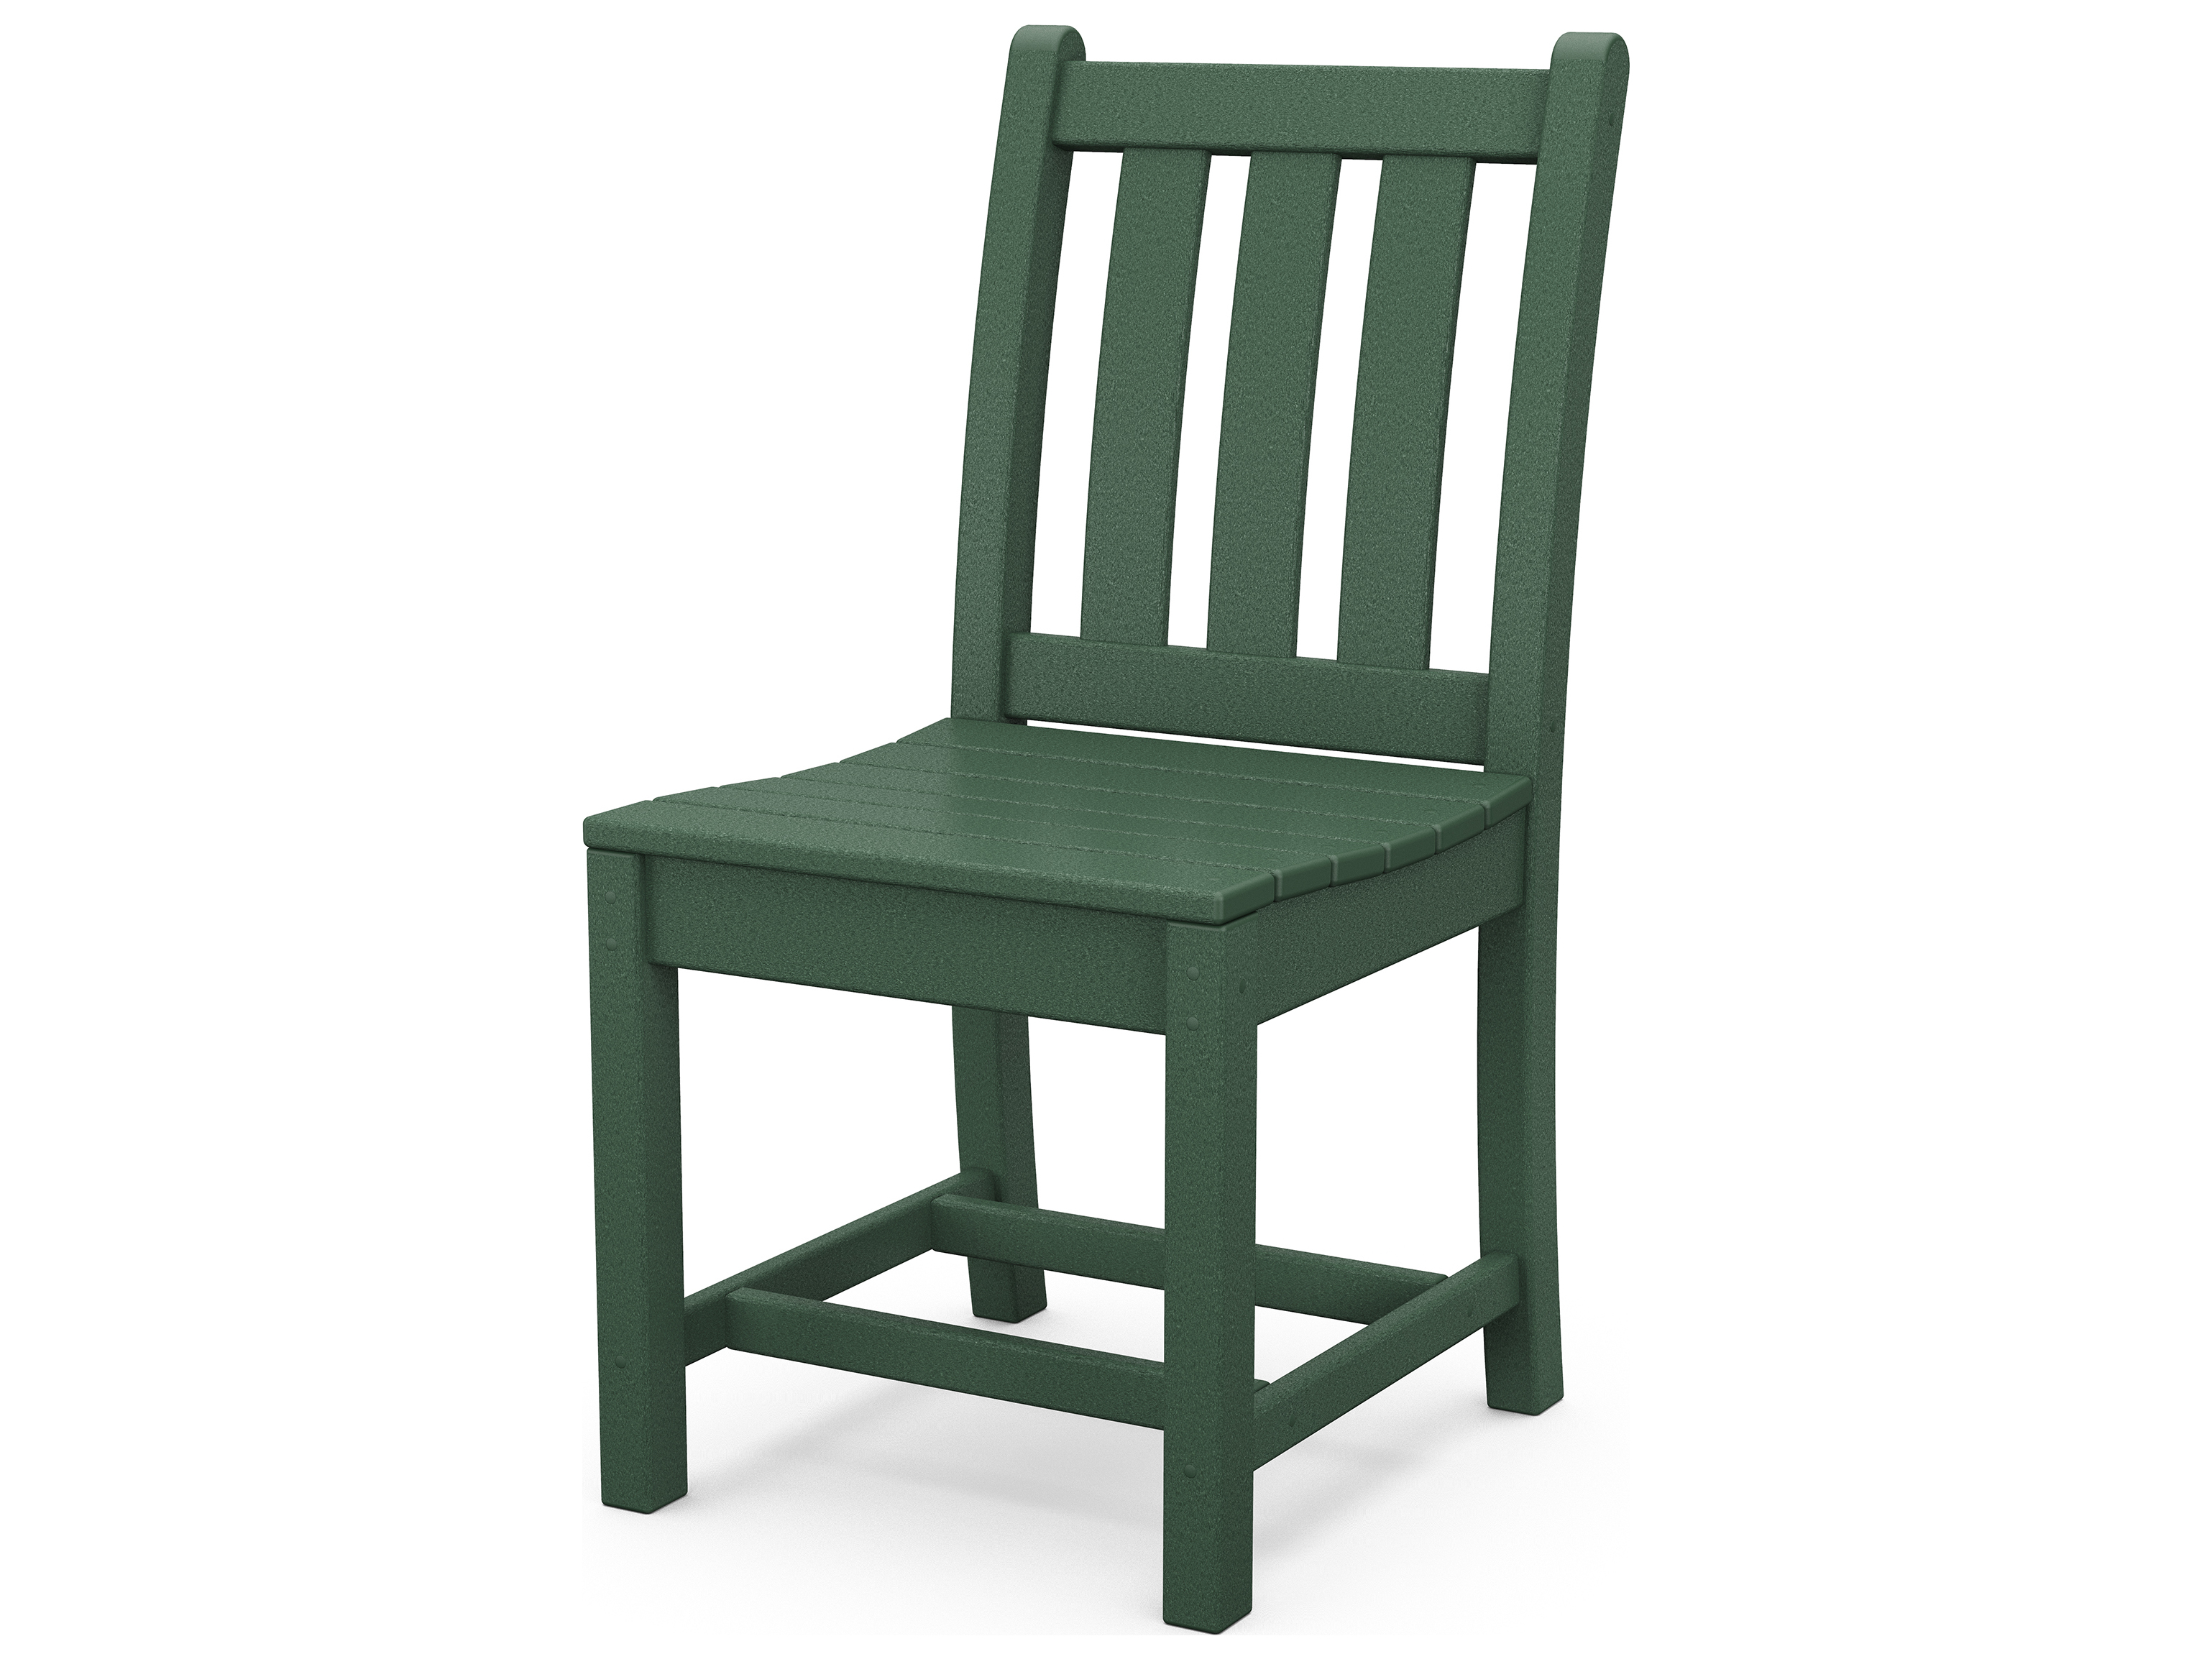 Plastic Dining Chairs Polywood Traditional Garden Recycled Plastic Dining Chair